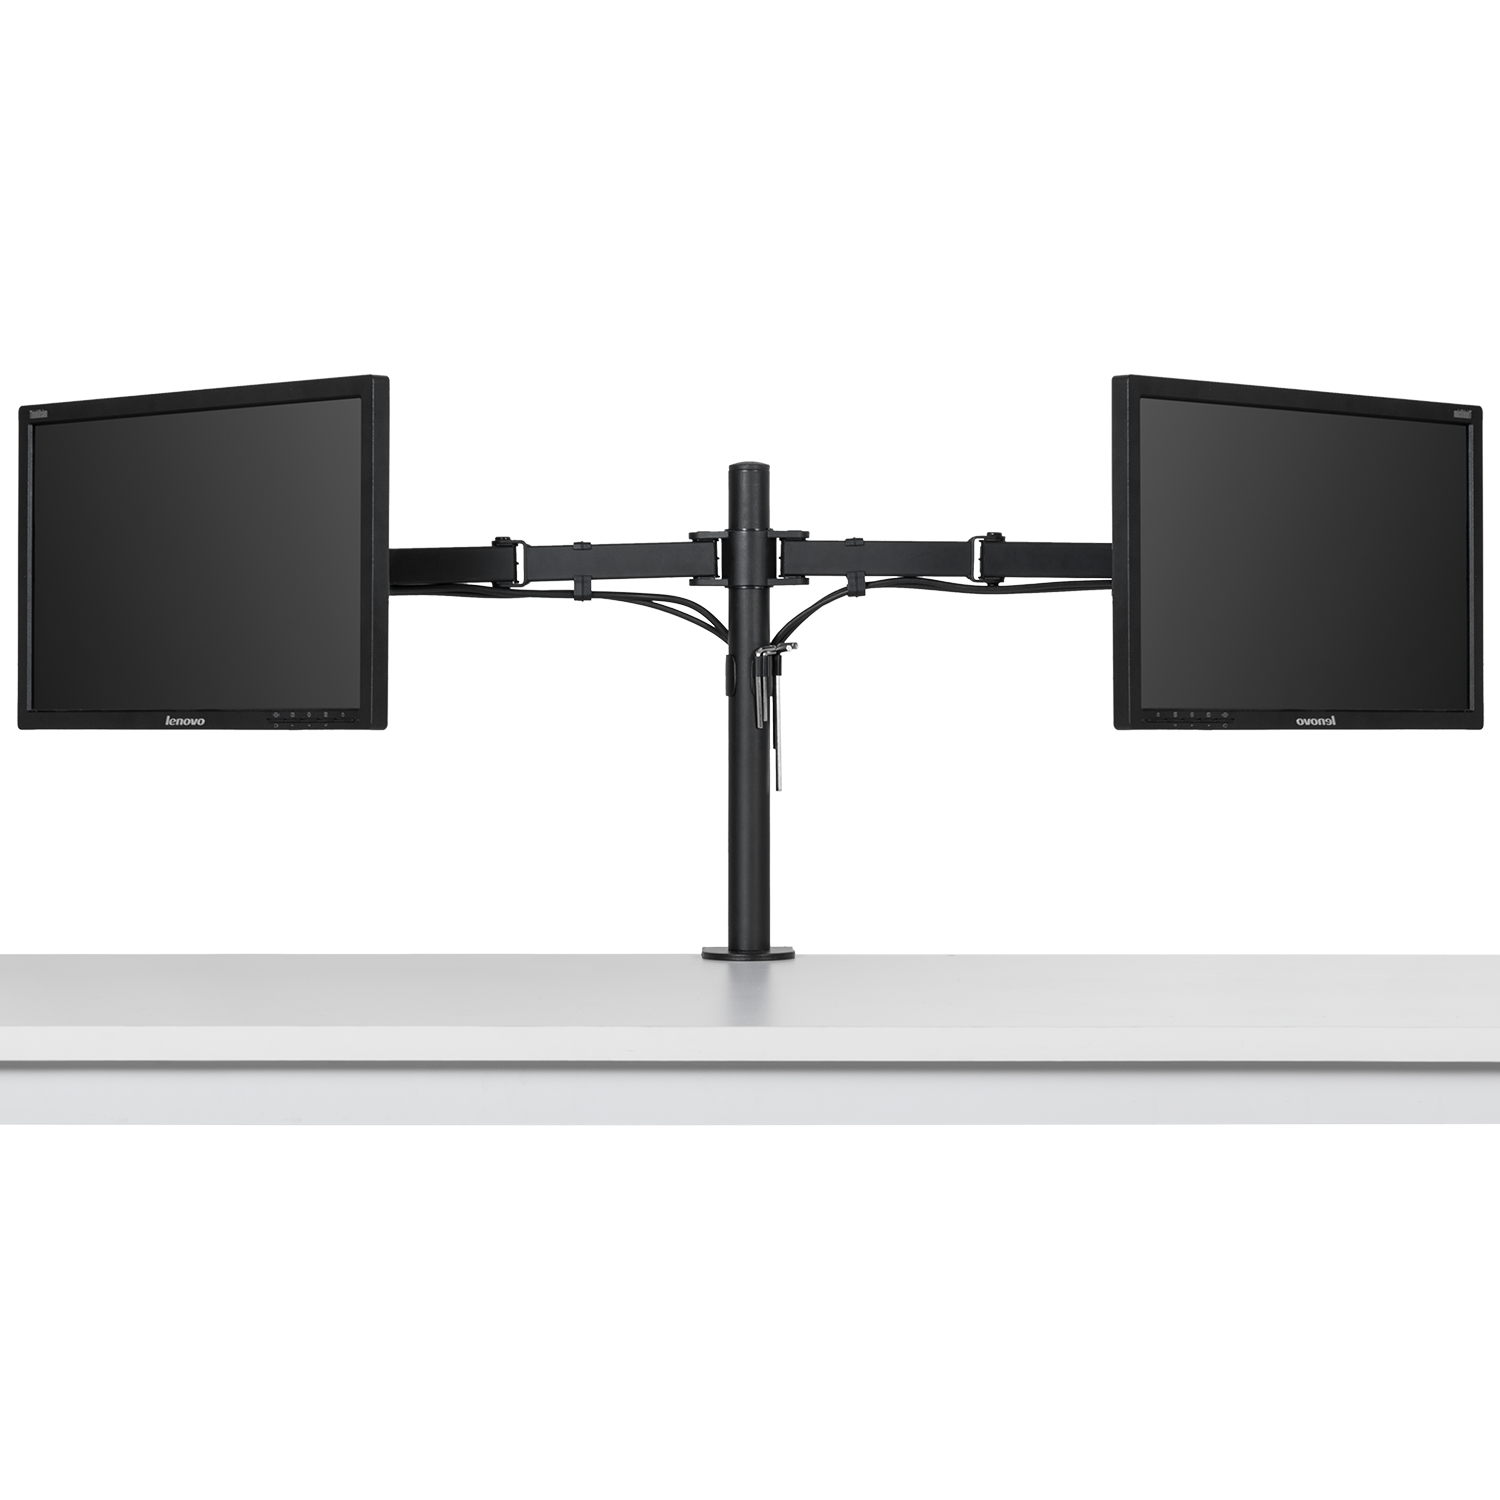 Ollieroo Dual Monitor Desk Stand Mount Swivel and Tilting Design Height Adjustable Fits up to Two 13-27 inch Screens VESA 75 and 100mm